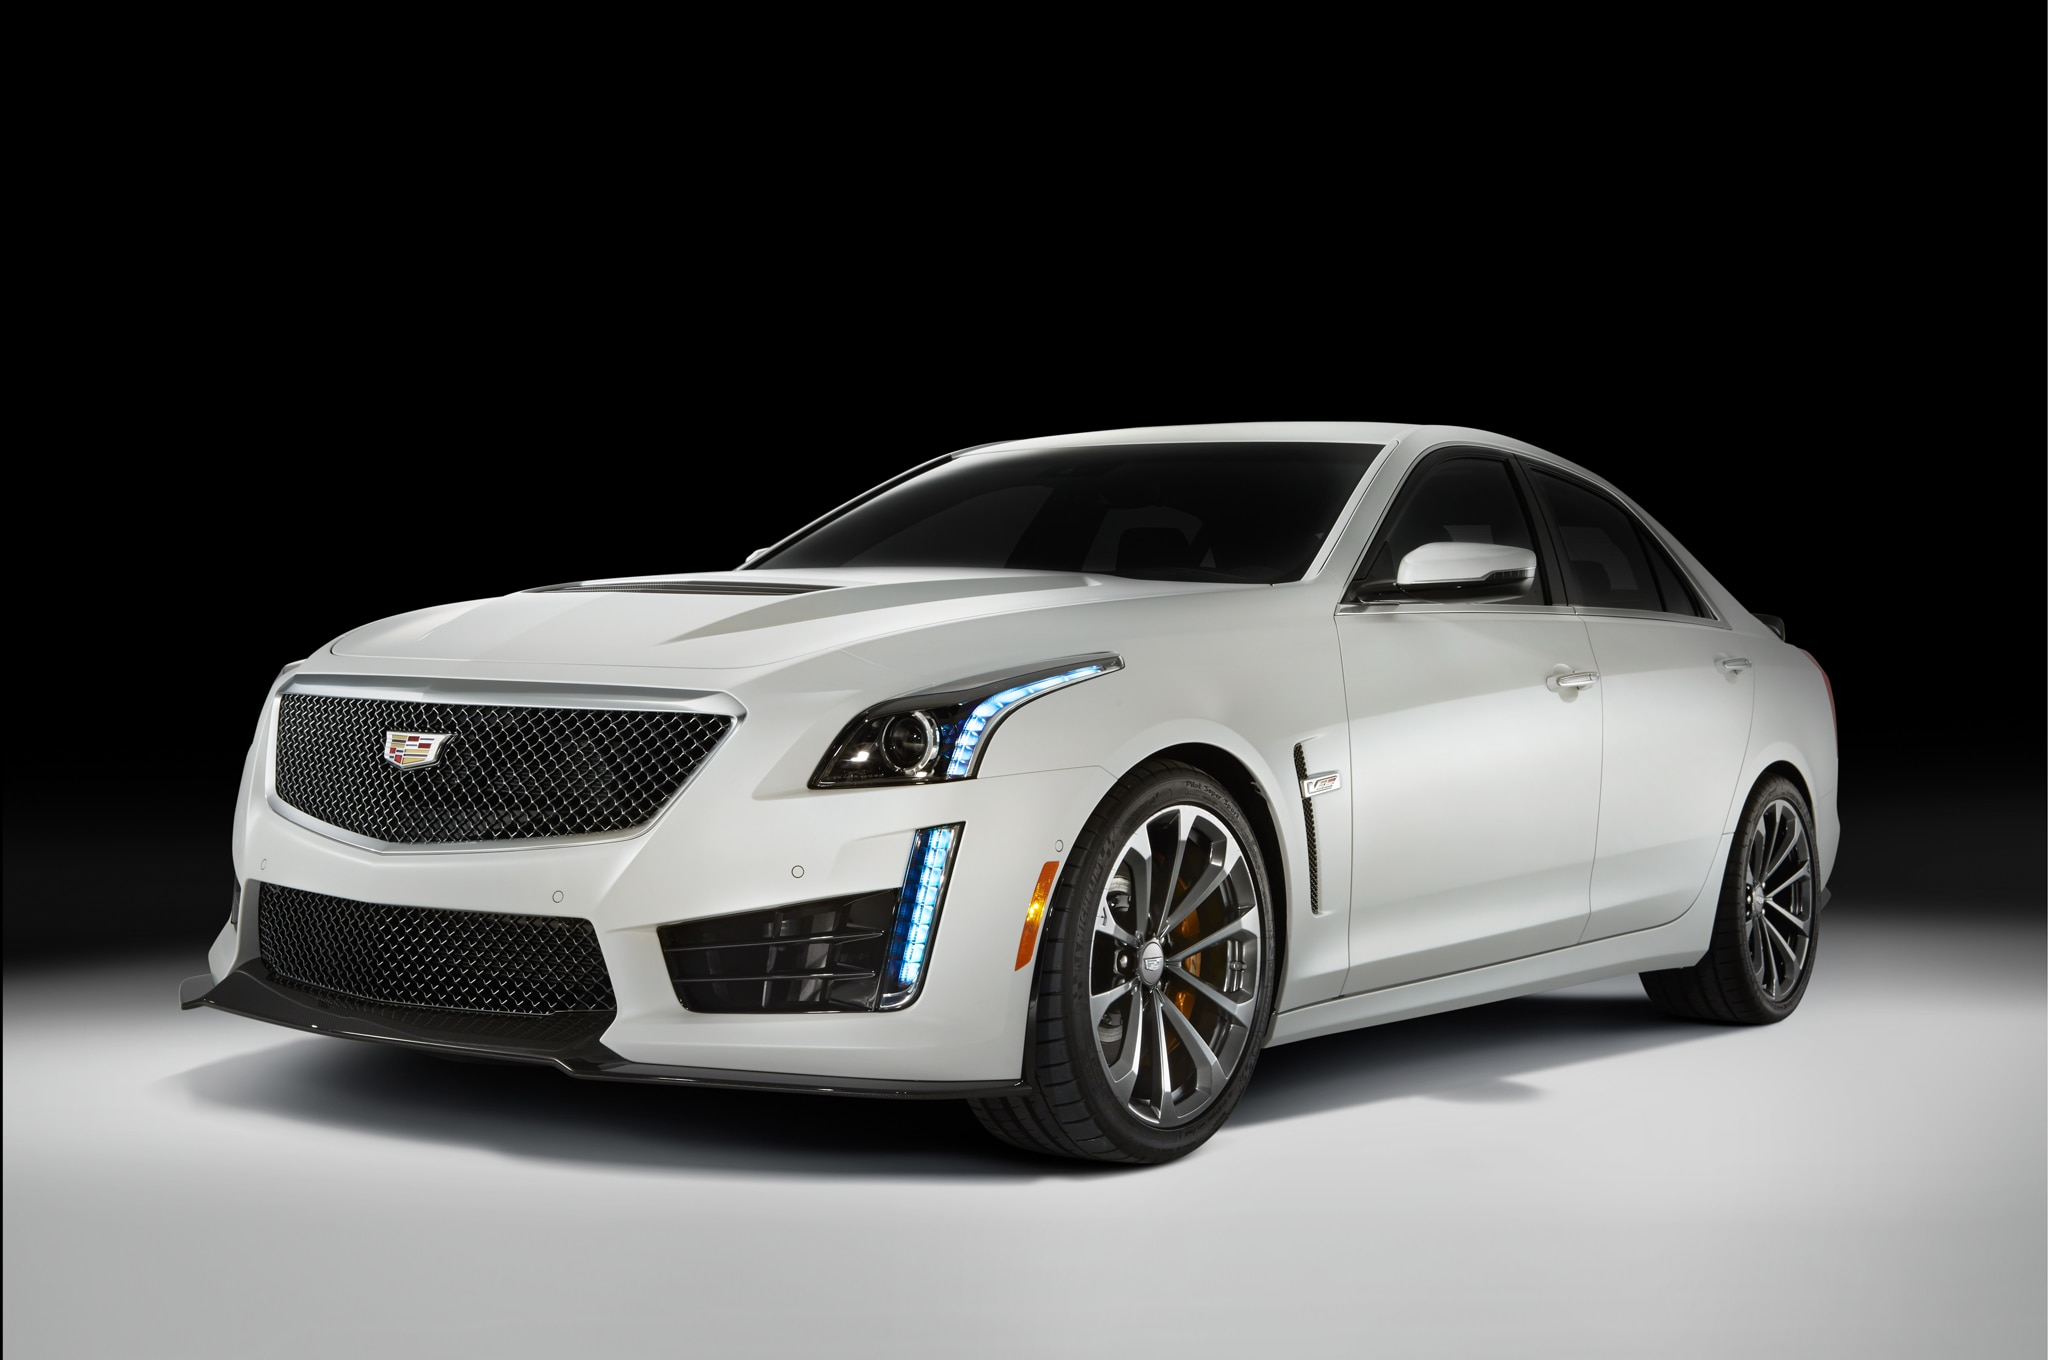 cadillac cts v will get more than 640 hp. Black Bedroom Furniture Sets. Home Design Ideas